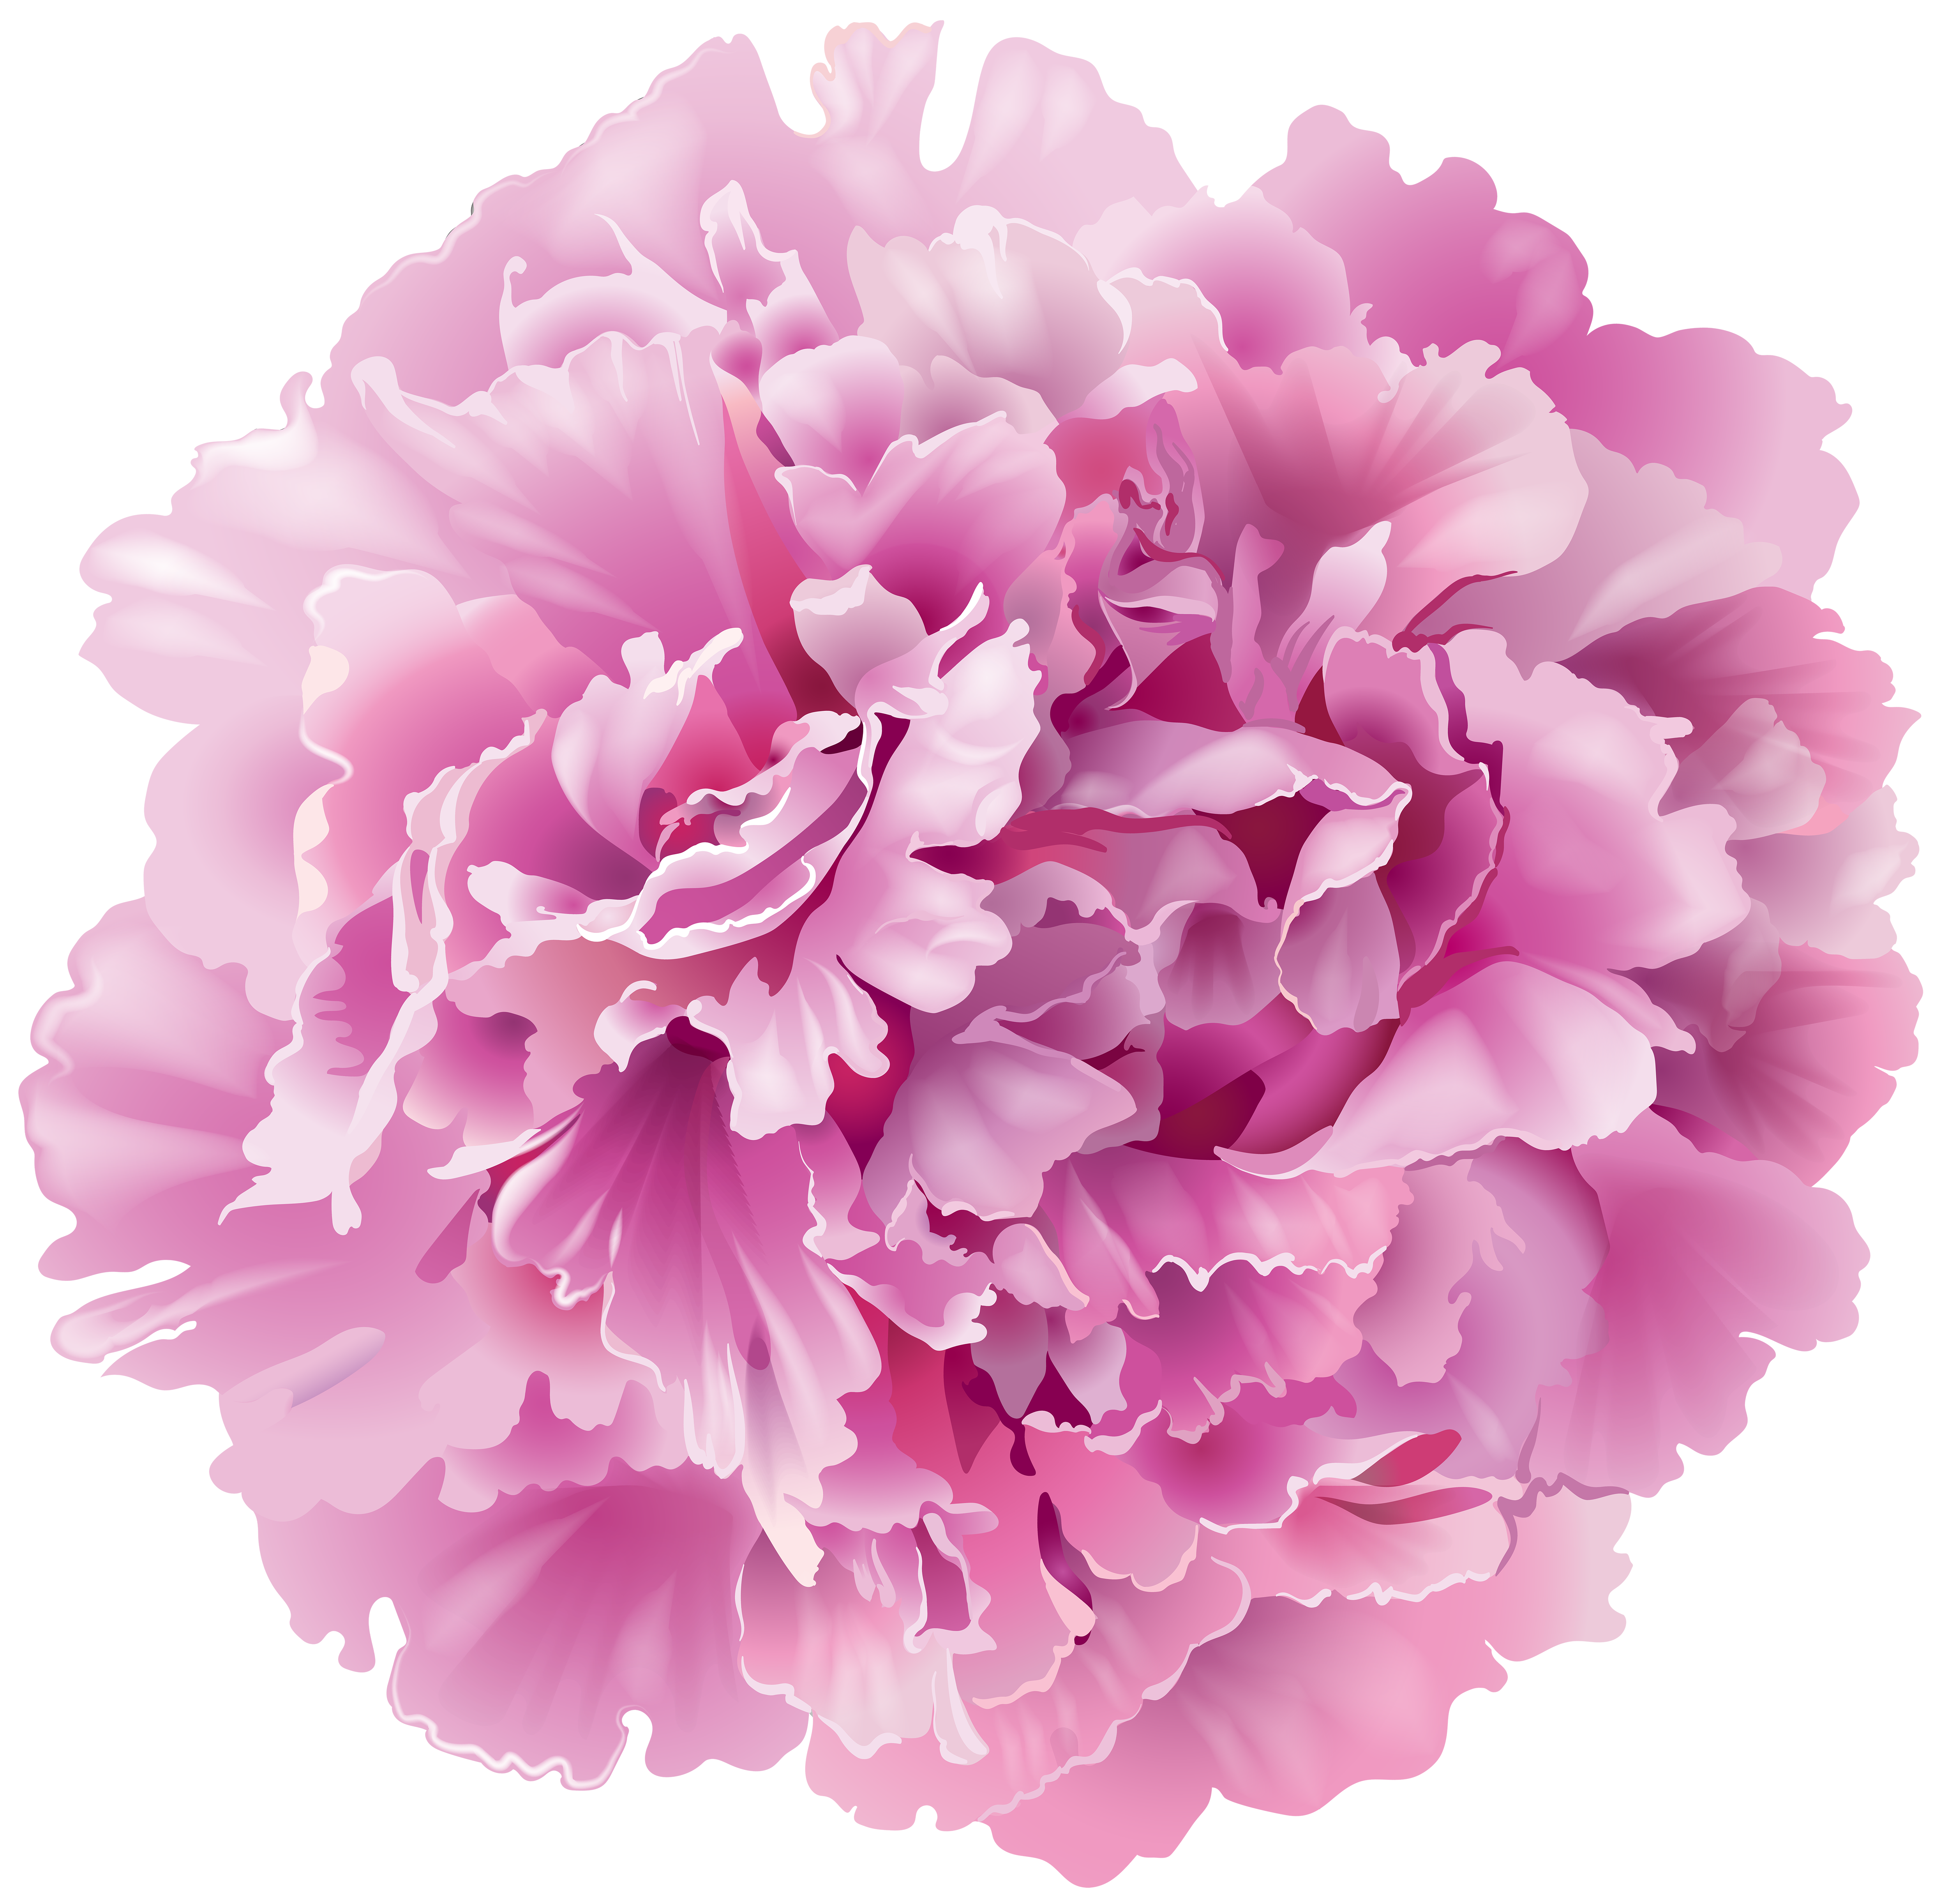 Peony flower clipart image black and white library Peony Transparent PNG Clip Art Image | Gallery Yopriceville - High ... image black and white library